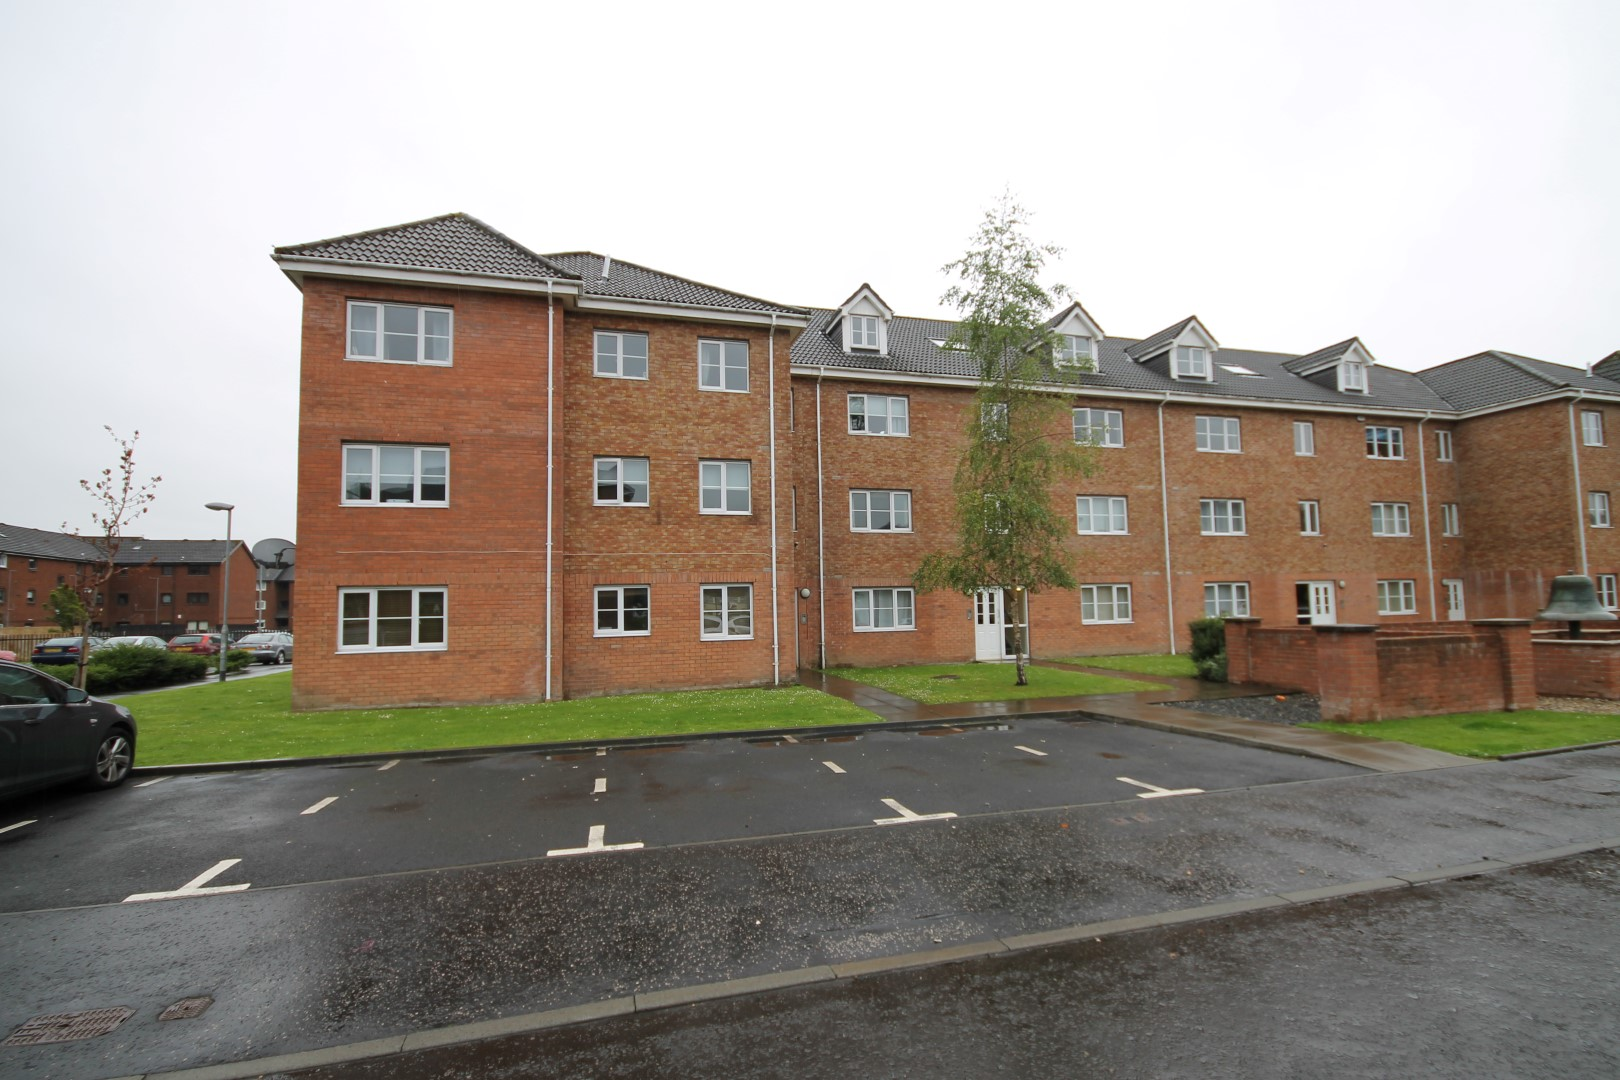 BRIDGETON – 2 Bedroom Unfurnished Flat